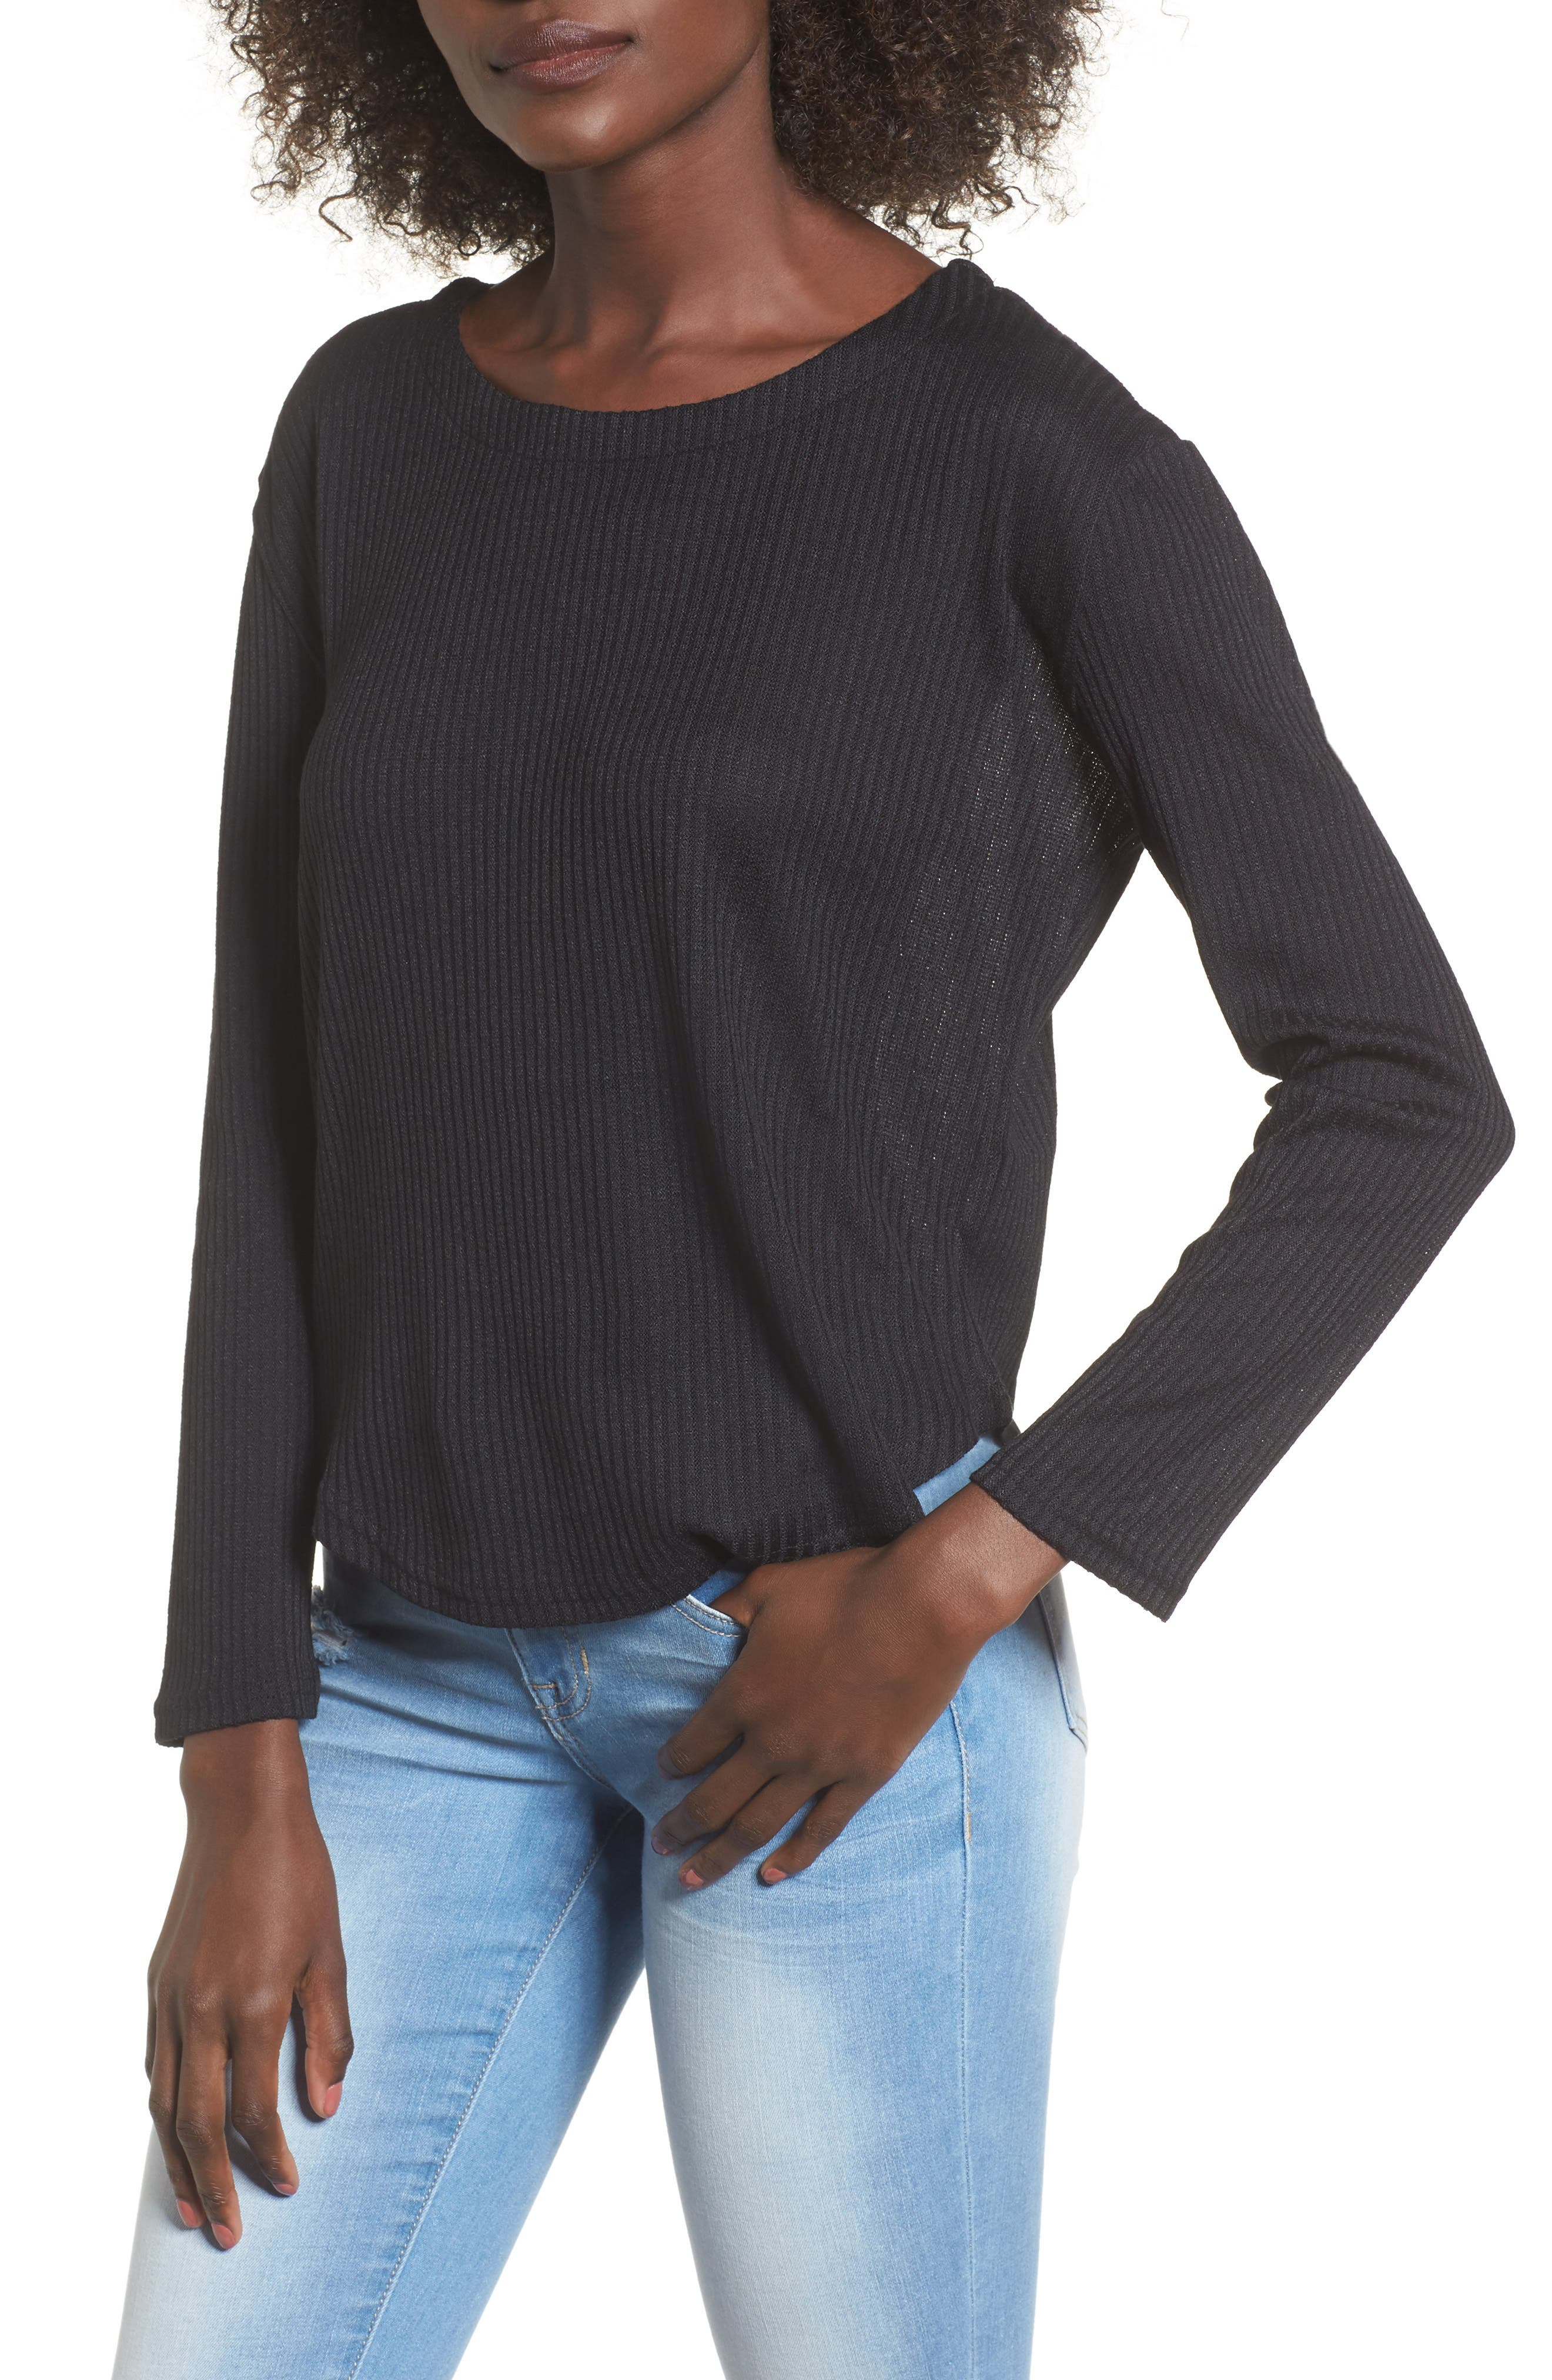 Sparrow Thermal Top,                         Main,                         color, Black